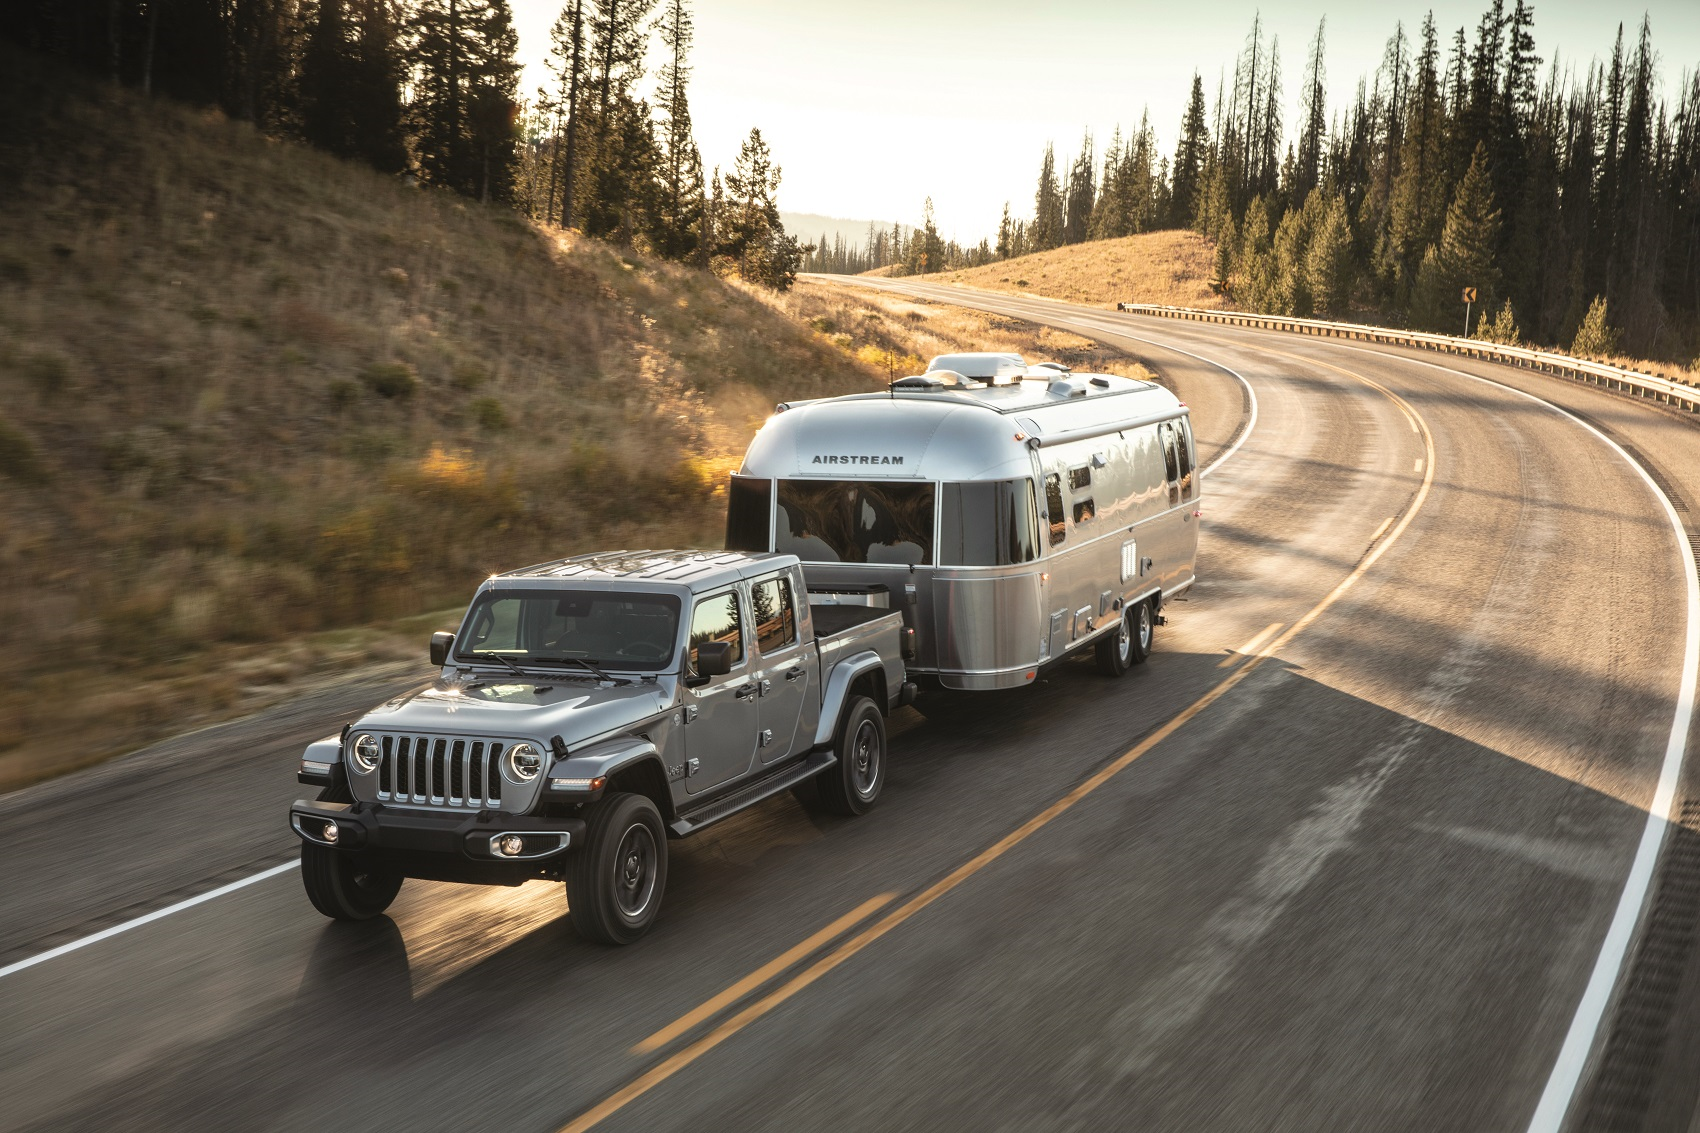 2020 Jeep Gladiator Towing and Payload